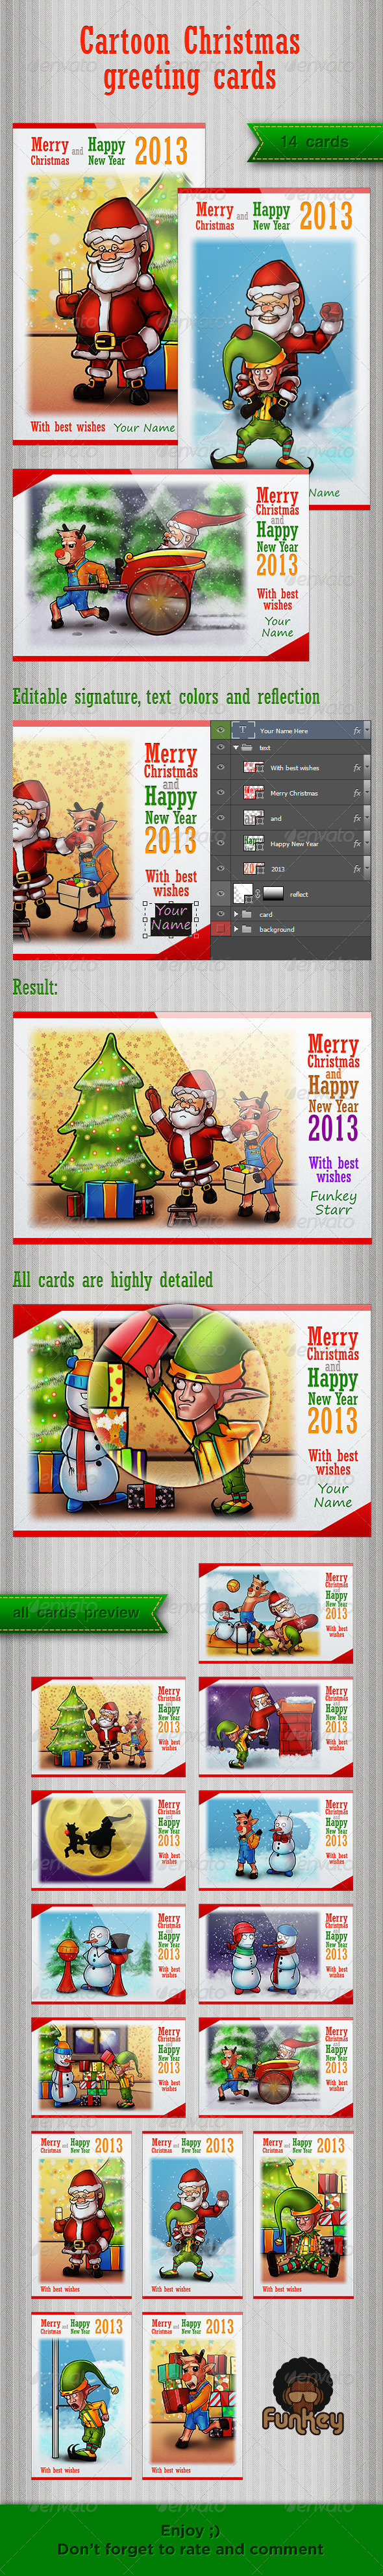 GraphicRiver Cartoon Christmas greeting cards 3629364